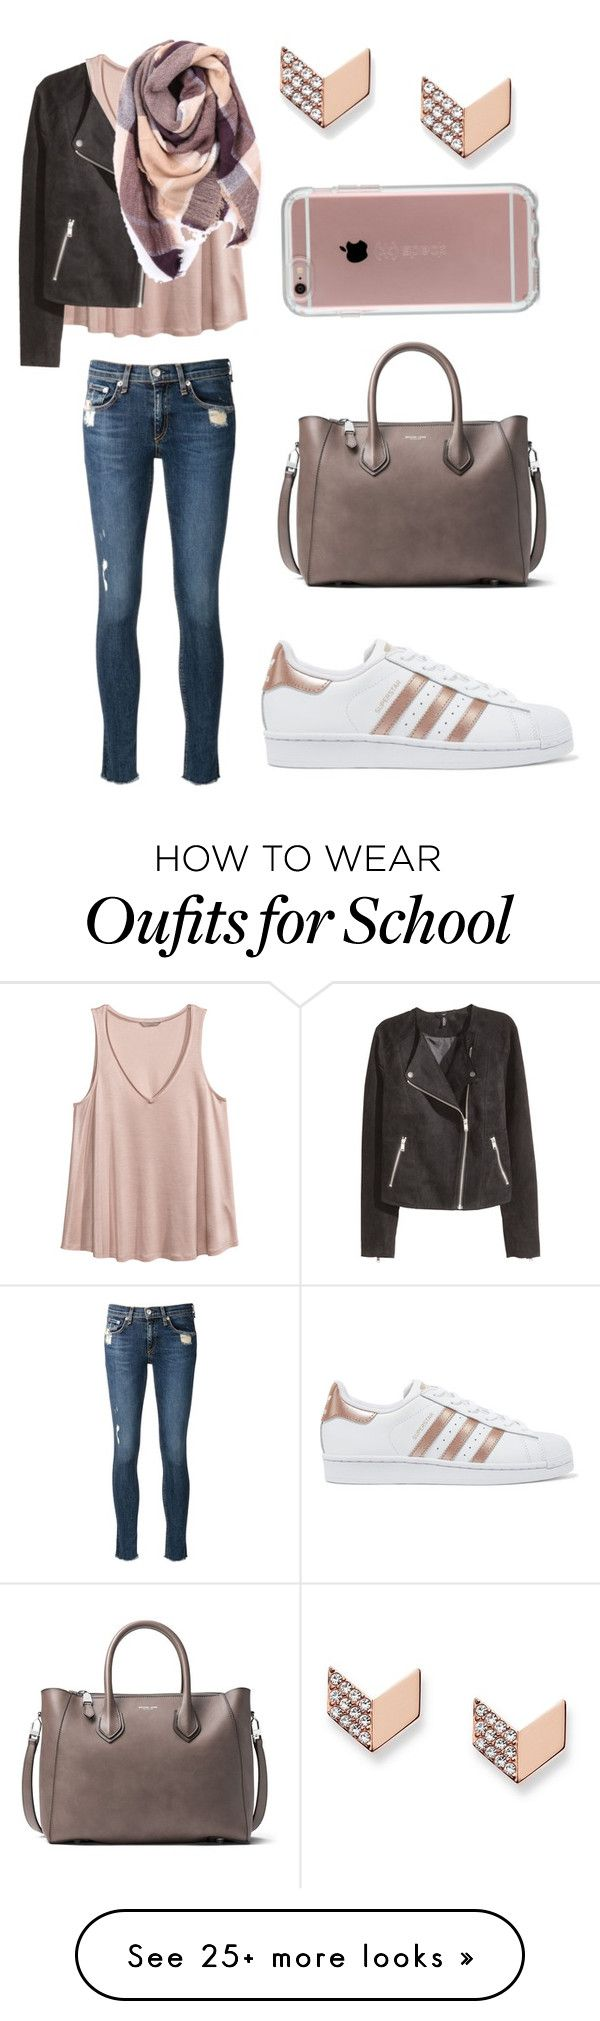 """""""Long school day"""" by sarahfohlen on Polyvore featuring FOSSIL, adidas Originals, rag & bone/JEAN, Michael Kors, H&M, Everest, Speck, Winter and 2k17"""